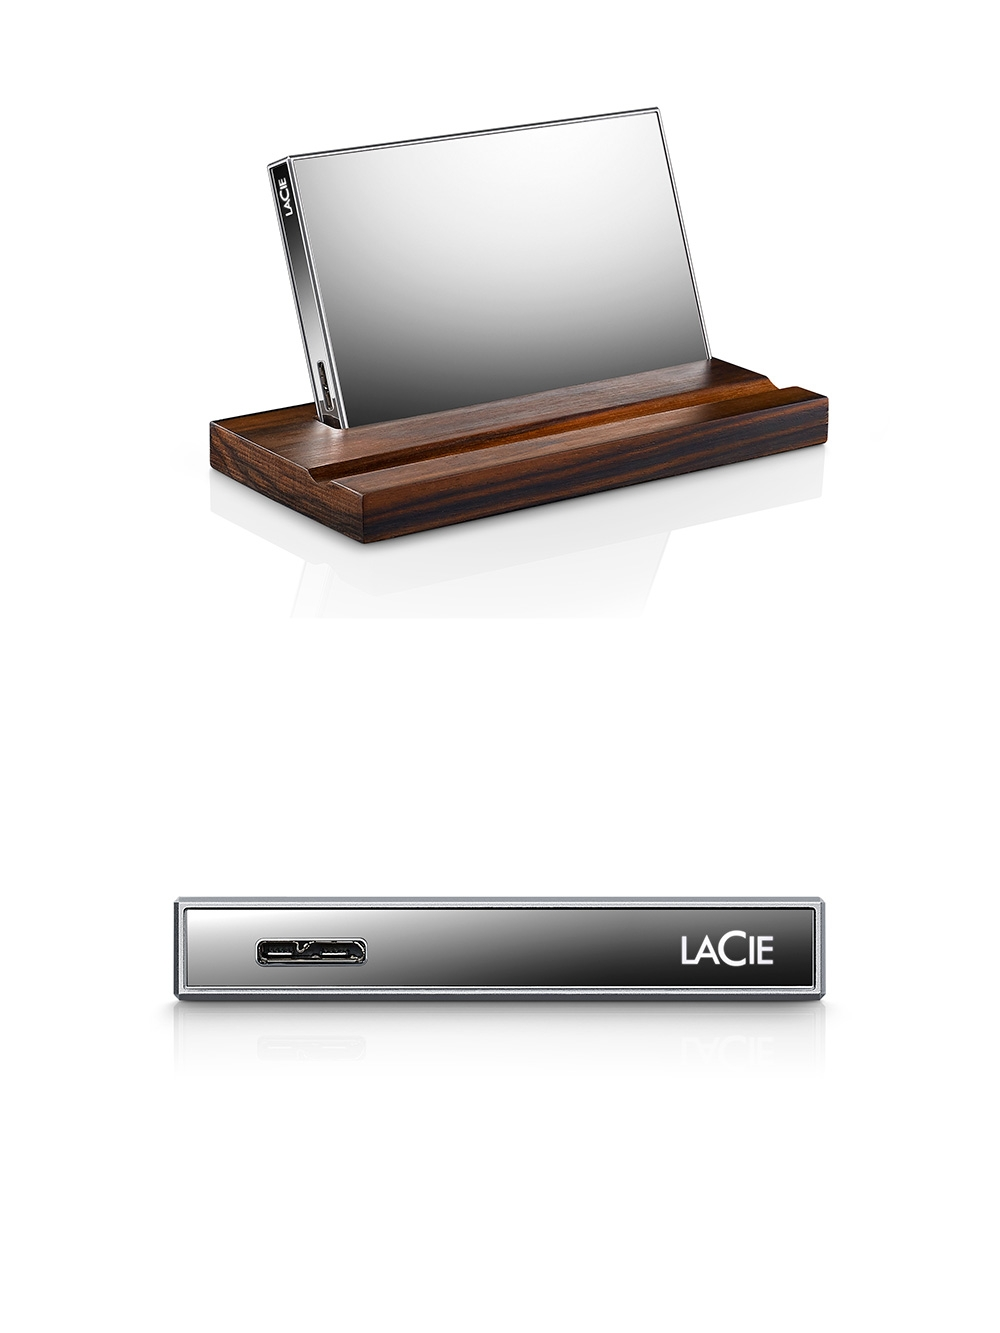 Glass Hard Drive : The lacie mirror is a truly stylish hard drive encased in